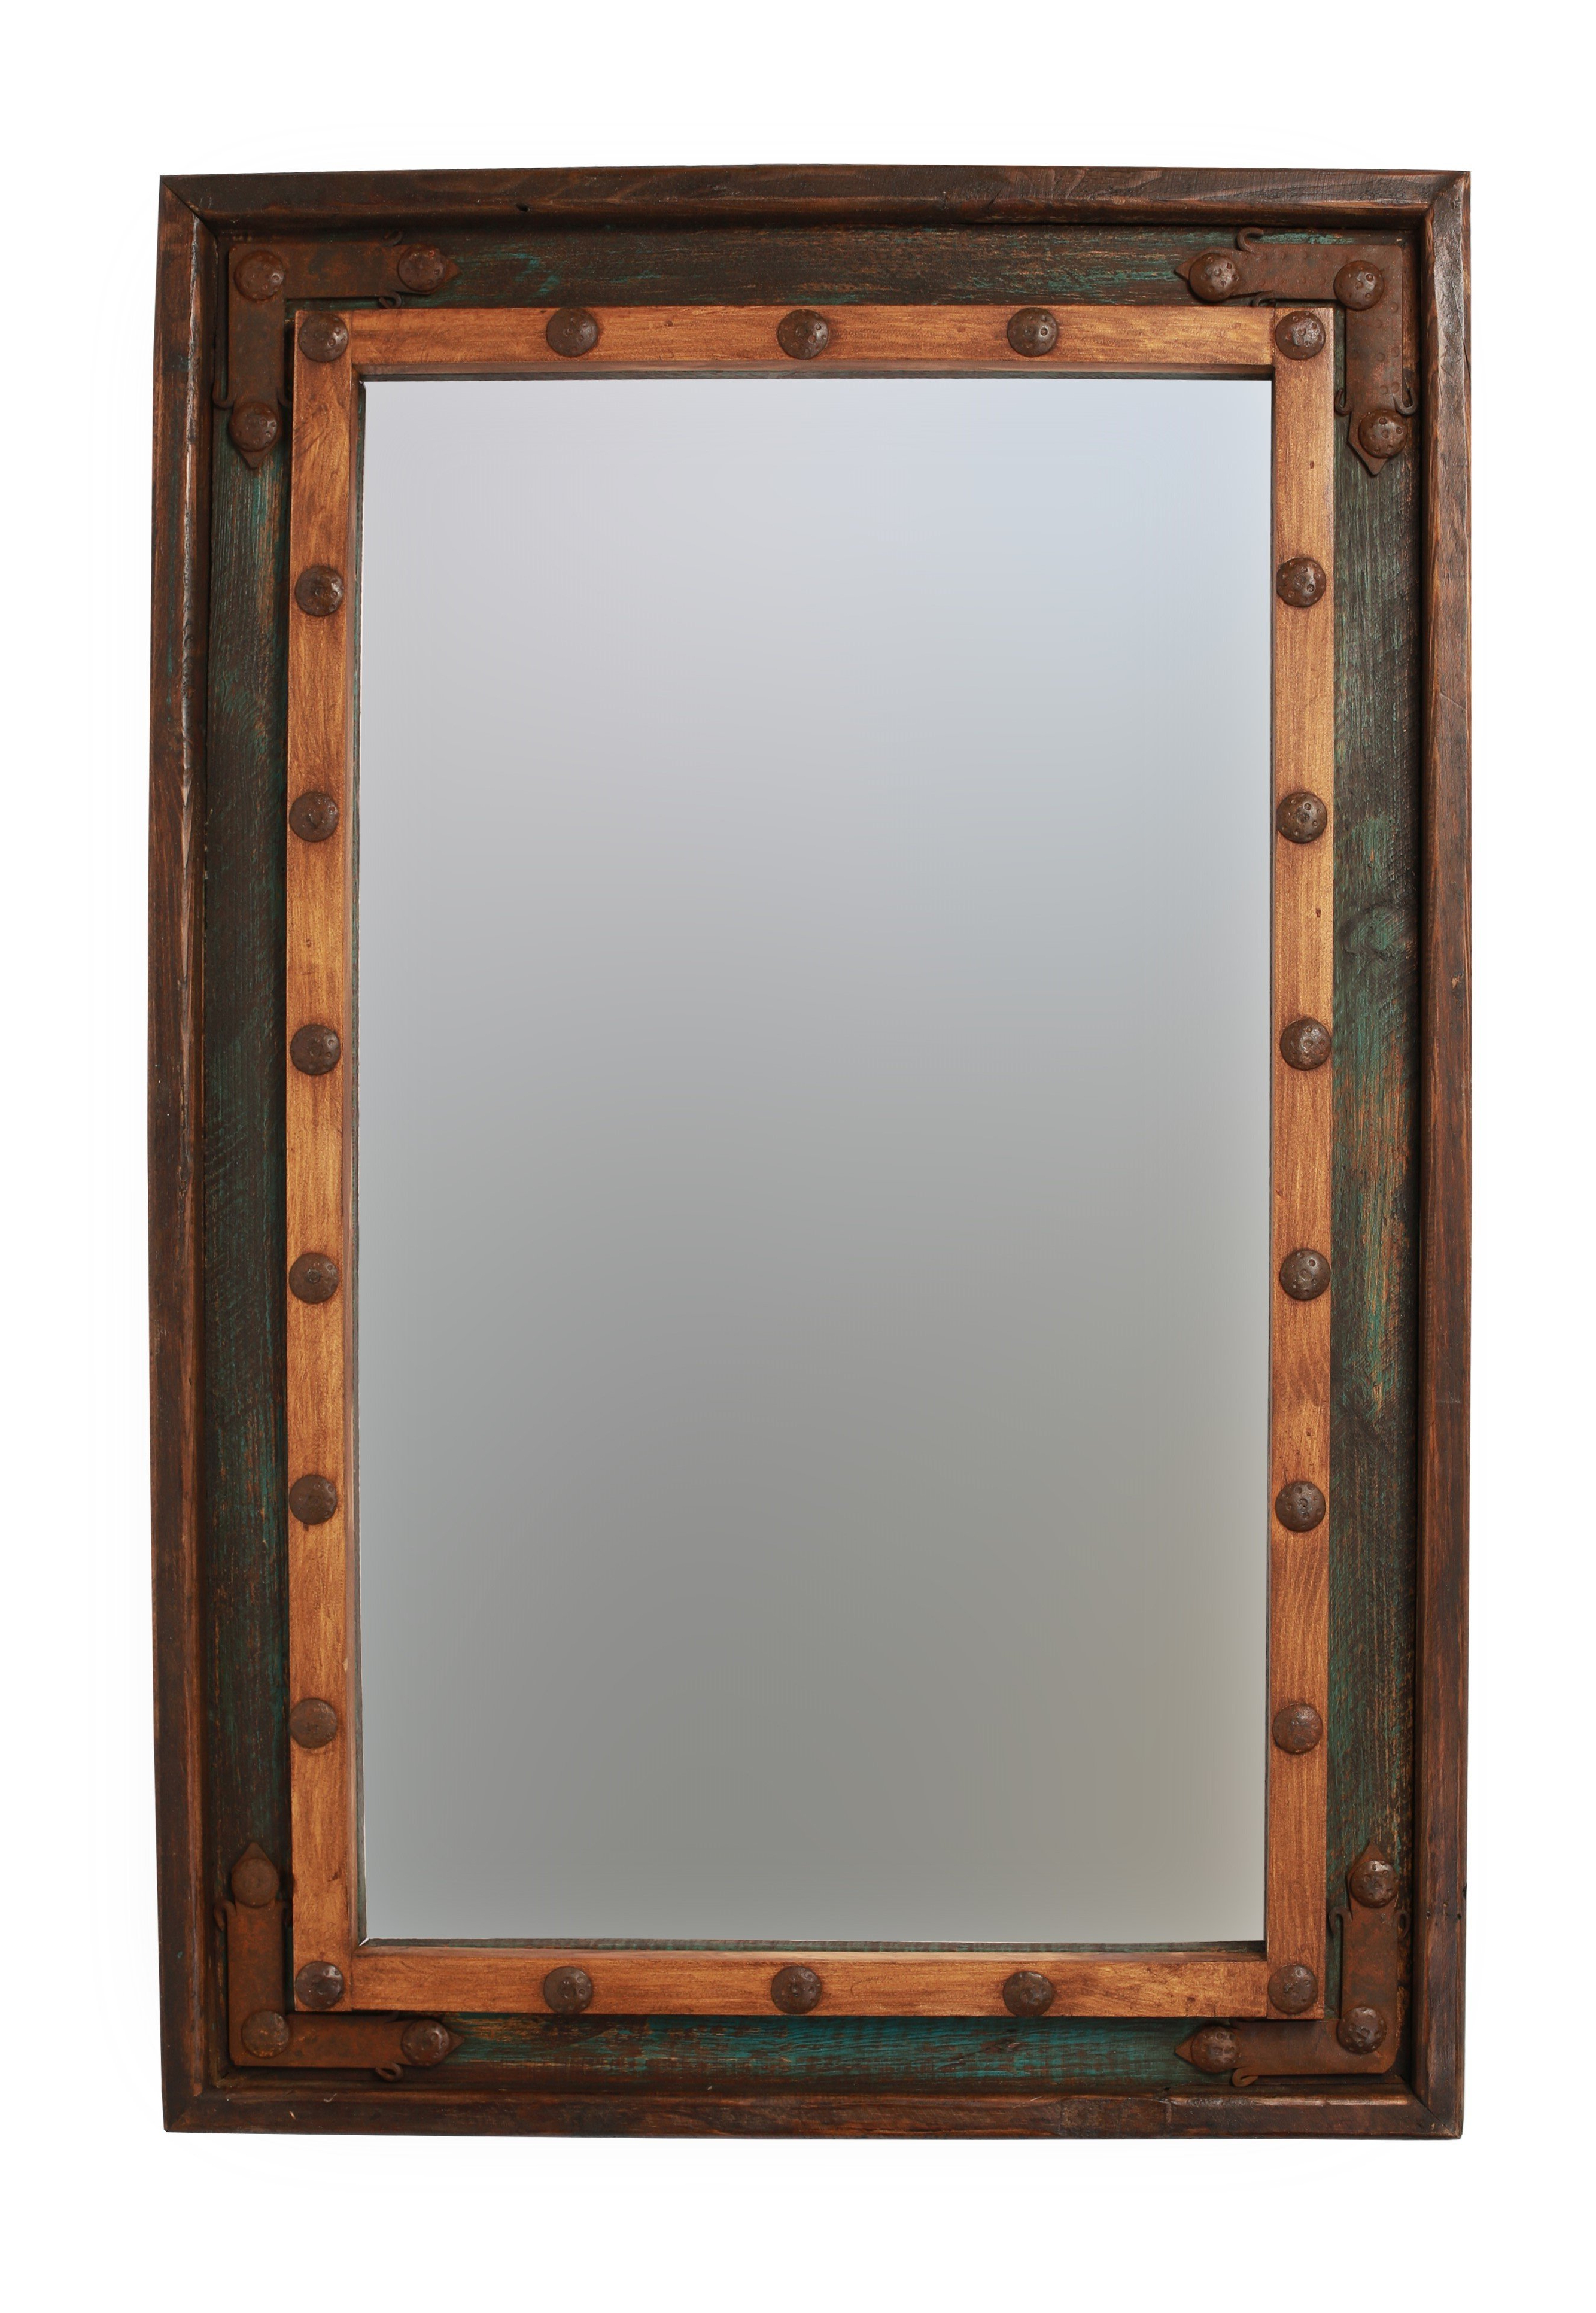 Current Islemade Rustic Distressed Bathroom/vanity Mirror With Kristy Rectangular Beveled Vanity Mirrors In Distressed (View 6 of 20)